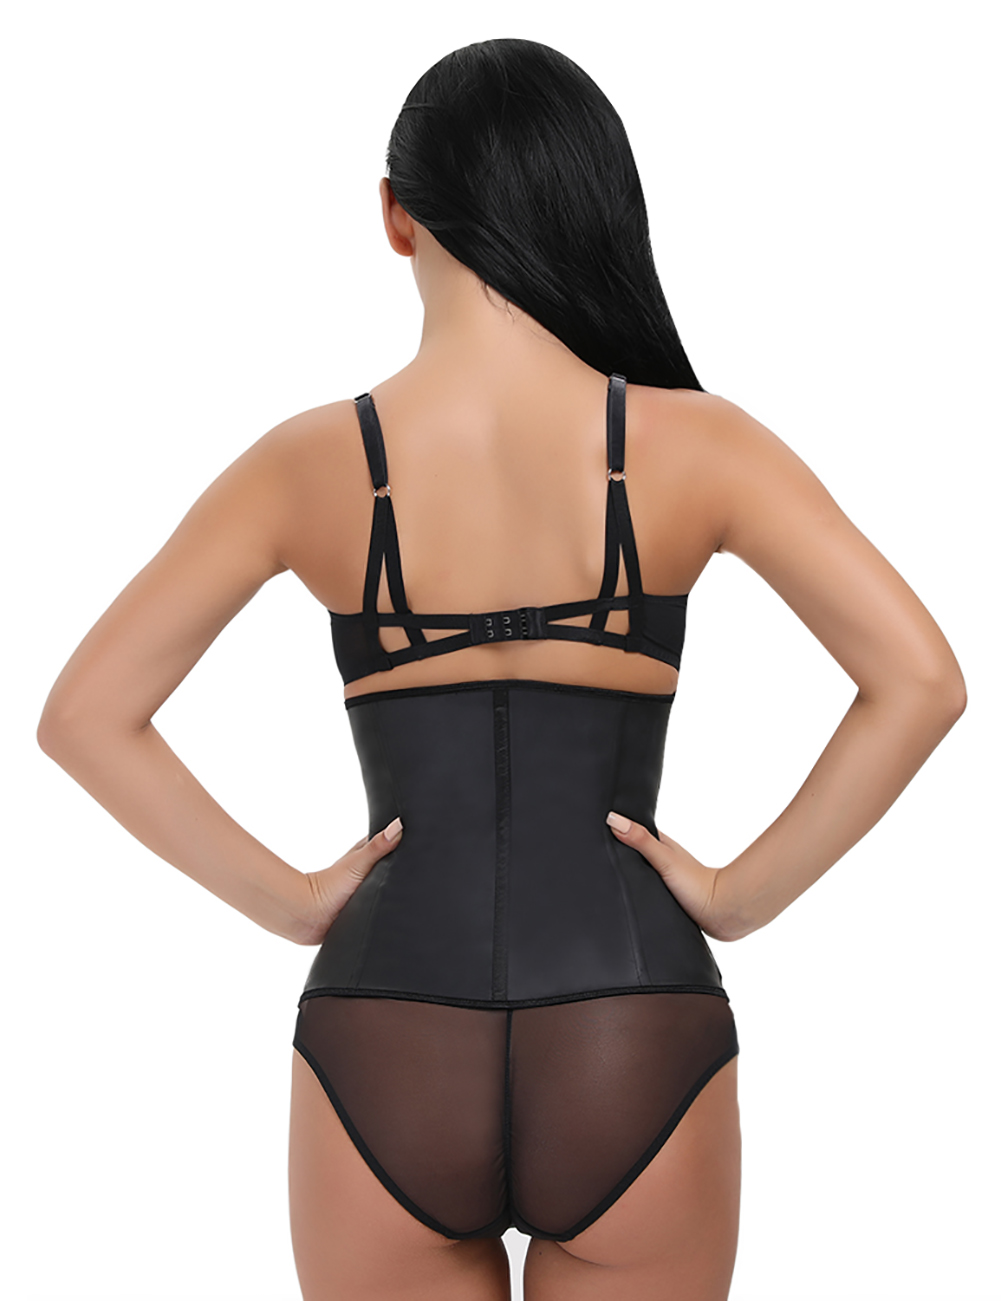 //cdn.affectcloud.com/feelingirldress/upload/imgs/Shapewear/Waist_Trainer/LB40029/LB40029-201912205dfc61ada6540.jpg